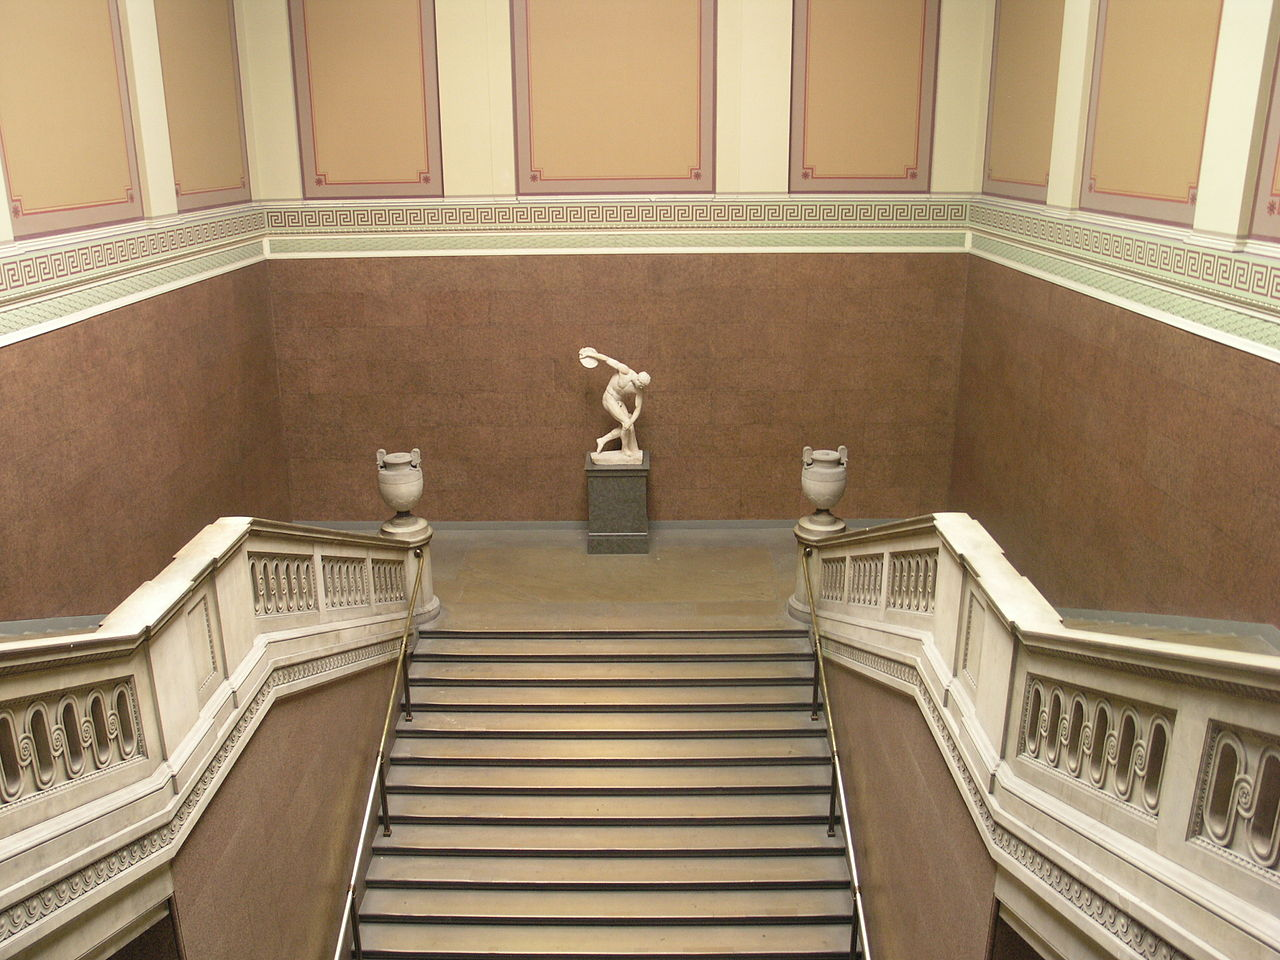 1280px-BM,_Main_Floor_Main_Entrance_Hall_-_South_Stairs.6.JPG